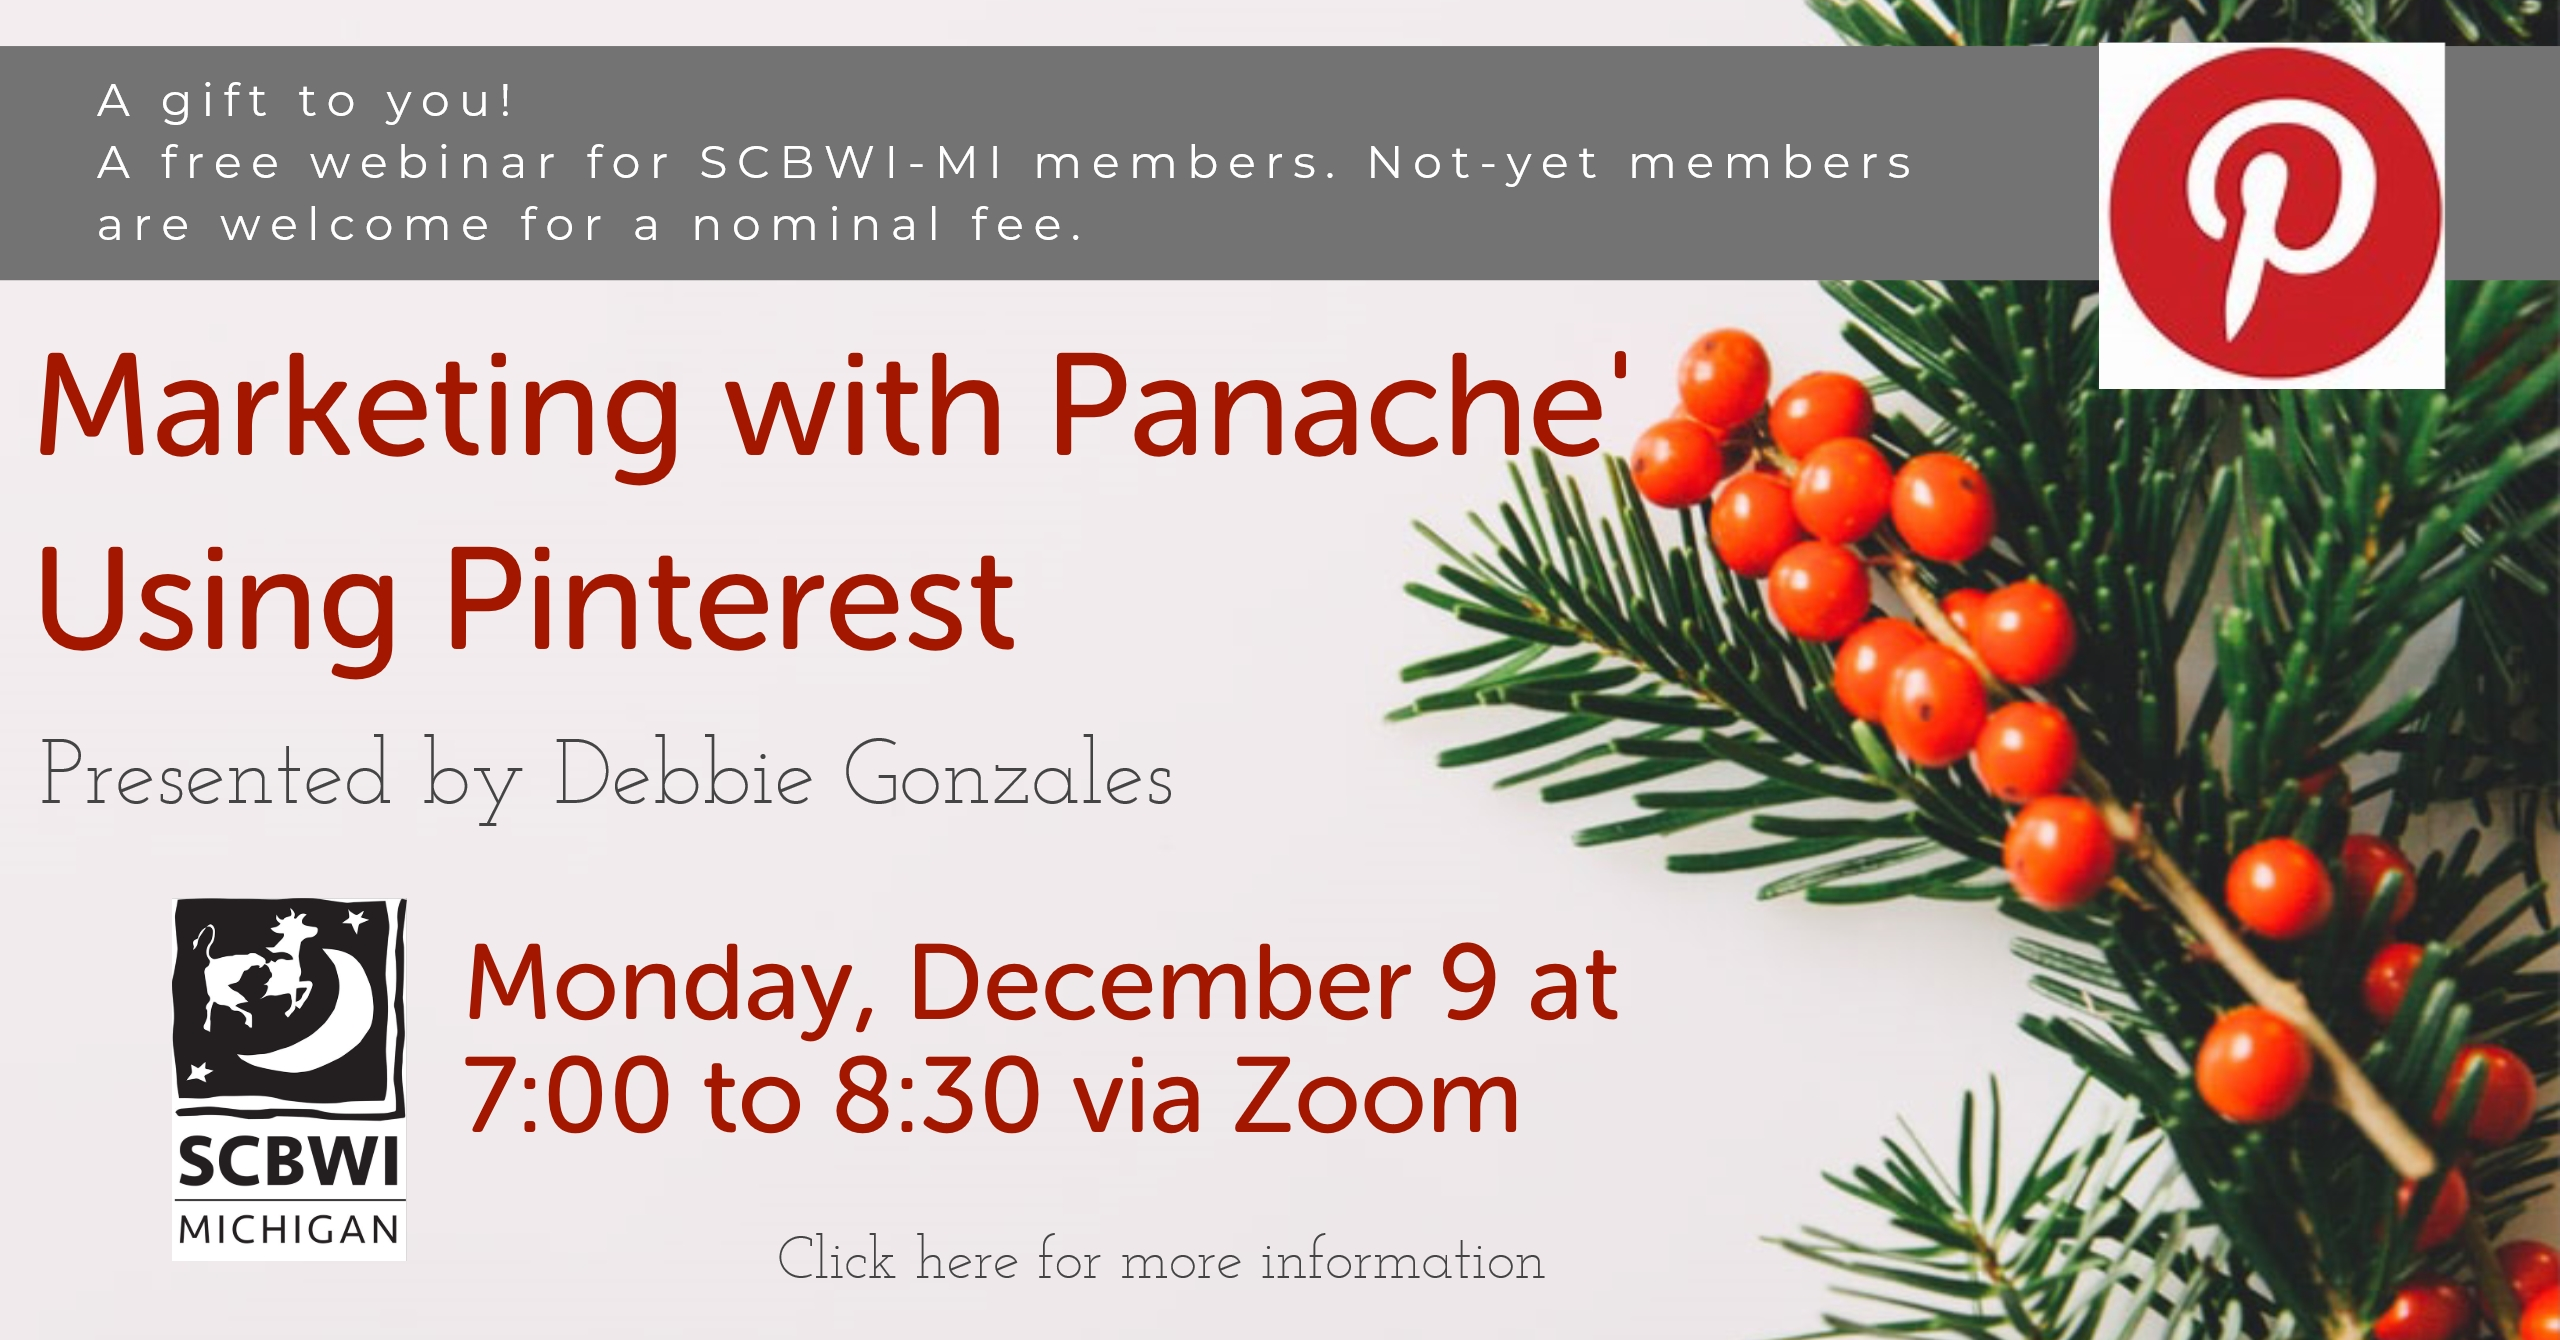 """Webinar Title: Marketing with Panache' Using Pinterest Date: Monday, December 9 Time: 7:00 – 8:30 PM Fees: Free for SCBWI-MI members, $30.00 for not-yet members (plus a small online service fee). Registration is limited. Presentation Description: Did you that Pinterest pins are """"evergreen"""", meaning that, unlike Tweets or Facebook posts, they never fade away? That Pinterest is three times more effective in making connections than Twitter? And, best of all, 80% of individuals who use Pinterest are educators. Teachers and librarians LOVE to seek out new books and lesson plans on Pinterest! Well, now you do. Exciting news, isn't it? Presenter Debbie Gonzales has intentionally employed the power of Pinterest as a promotional platform to highlight her Guides by Deb projects and has had remarkable success in doing so. She's grown her viewership from a mere 400 to 135K in just a year's time, all the while keeping a close eye on trends and analytics. In this session, Deb will present an overview of Pinterest, demonstrate how to craft pins and create boards, discuss the importance of posting relatable content, and give a peek to how the back end of the platform functions. A downloadable workbook is included in the session. Bio: Debbie Gonzales is an author, an educator, a podcaster, and a coach specializing in helping book creators over the age of 40 establish visibility in the marketplace. Her debut picture book is entitled GIRLS WITH GUTS: THE ROAD TO BREAKING BARRIERS AND BASHING RECORDS was published by Charlesbridge and is the inspiration for The Debcast, her podcast celebrating the tenacity of the female athlete. Deb is a Michigan Reading Association board member and serves as part of the SCBWI-MI Ad-Com. She earned her MFA in writing for children and young adults from the Vermont College of Fine Arts. Learn more about Deb and her many projects by accessing her websites at www.debbiegonzales.com and www.guidesbydeb.com.  Registration links will be made available soon!"""